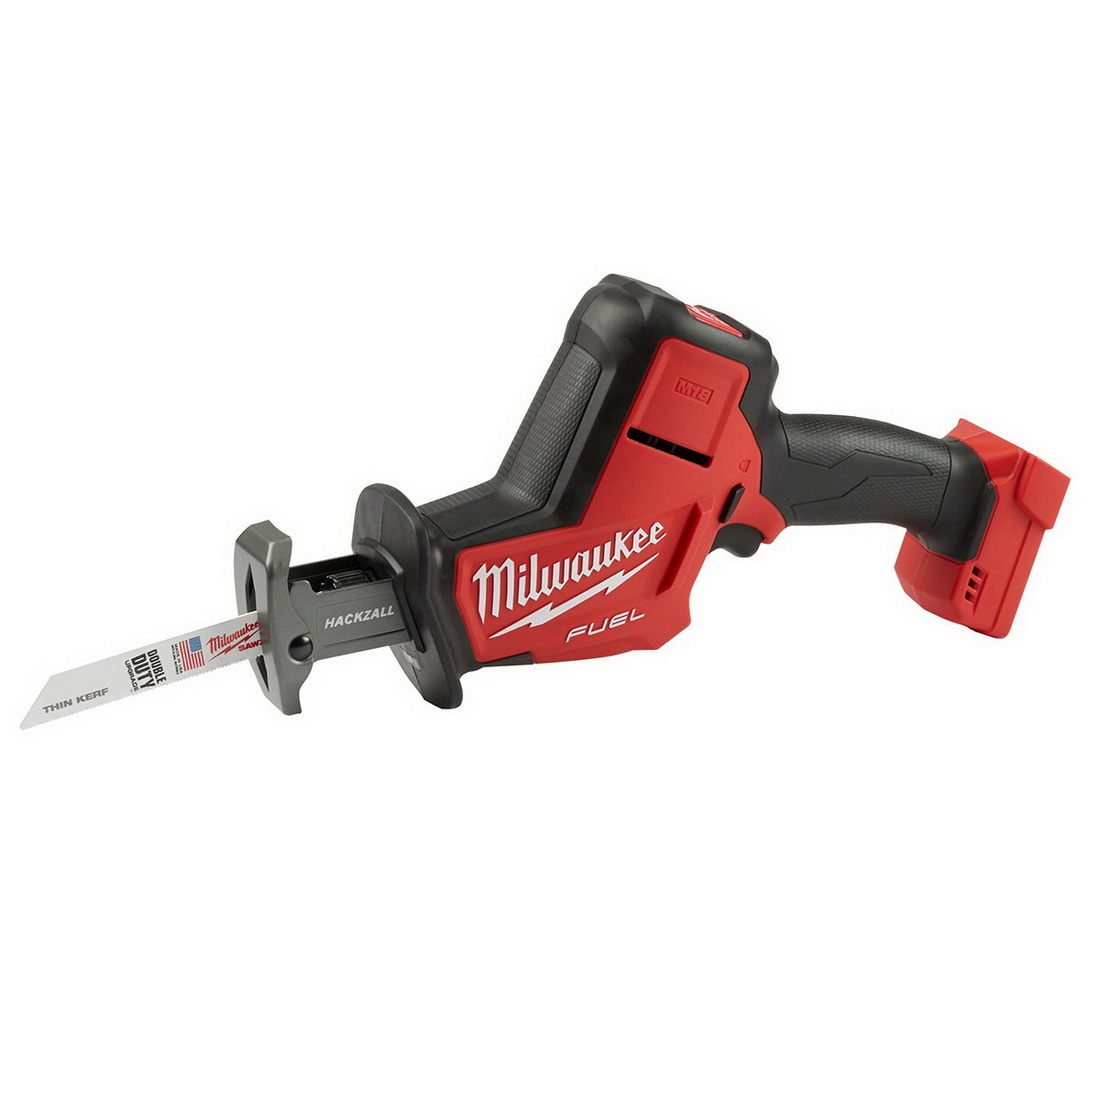 M18 FUEL Hackzall Cordless Reciprocating Saw